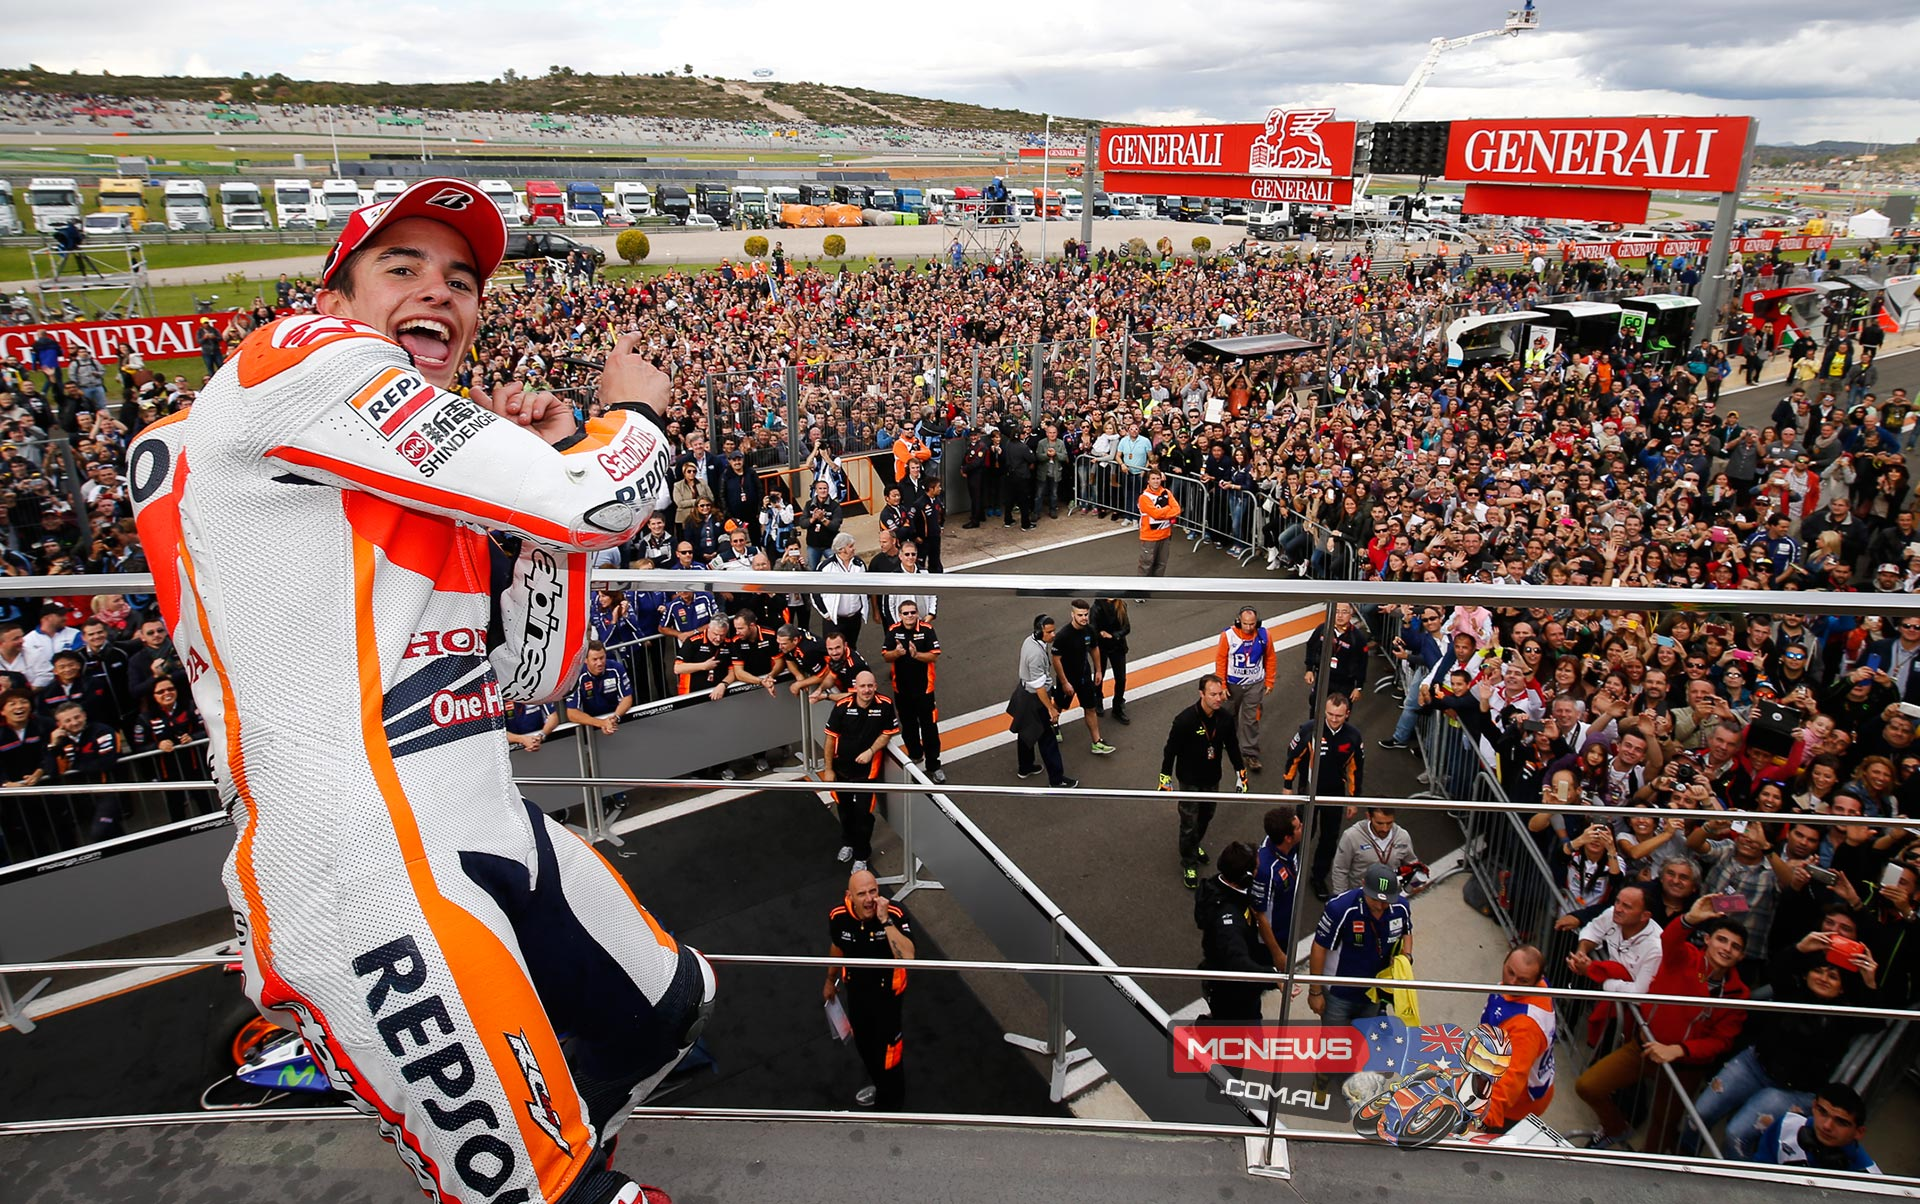 Marc Marquez won at Valencia in 2014 after wrapping up the Championship in Motegi. It was a special day at Valencia that year for the Marquez family as Alex wrapped up the Moto3 Title that day.